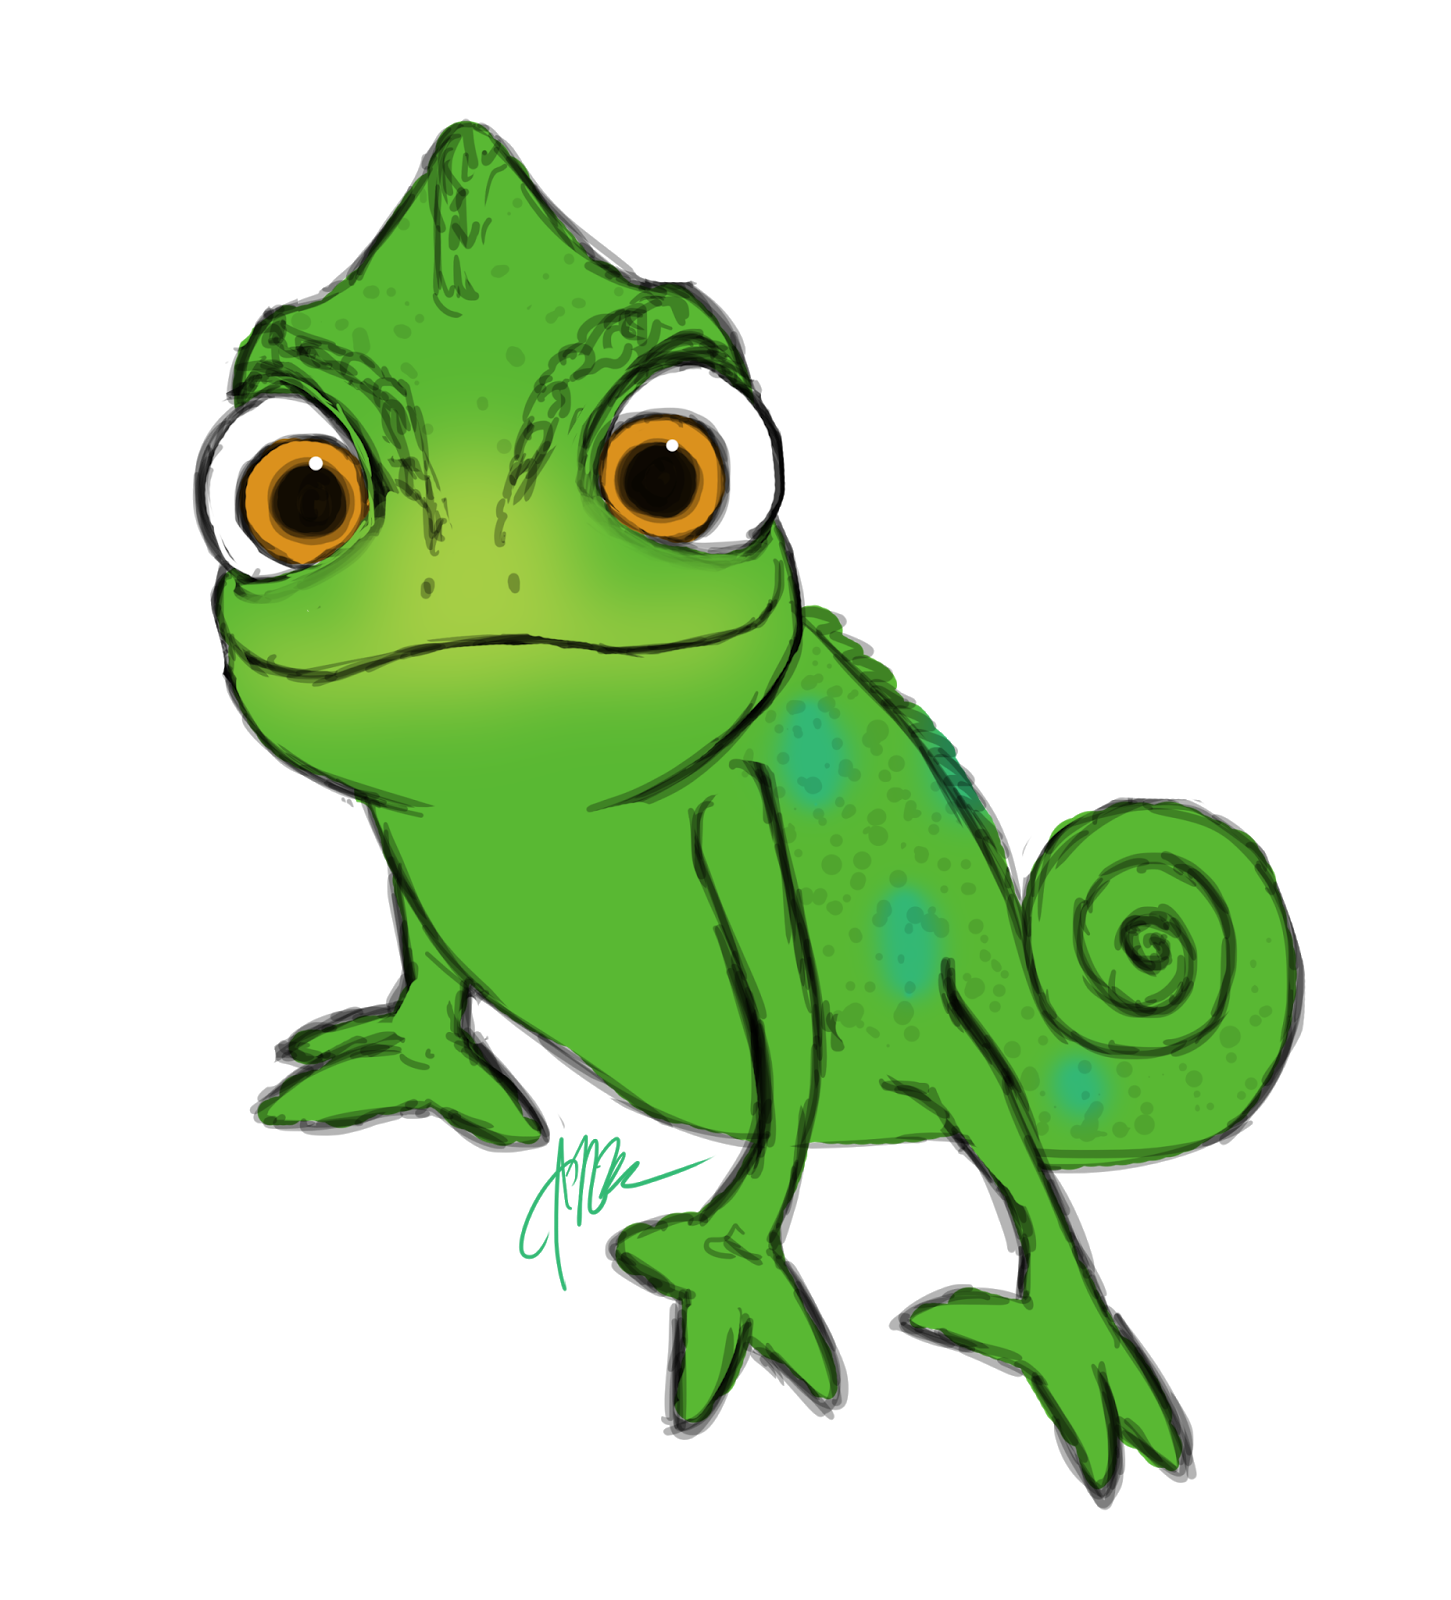 clip art freeuse download Lizard clipart tangled character. Images for pascal smiling.